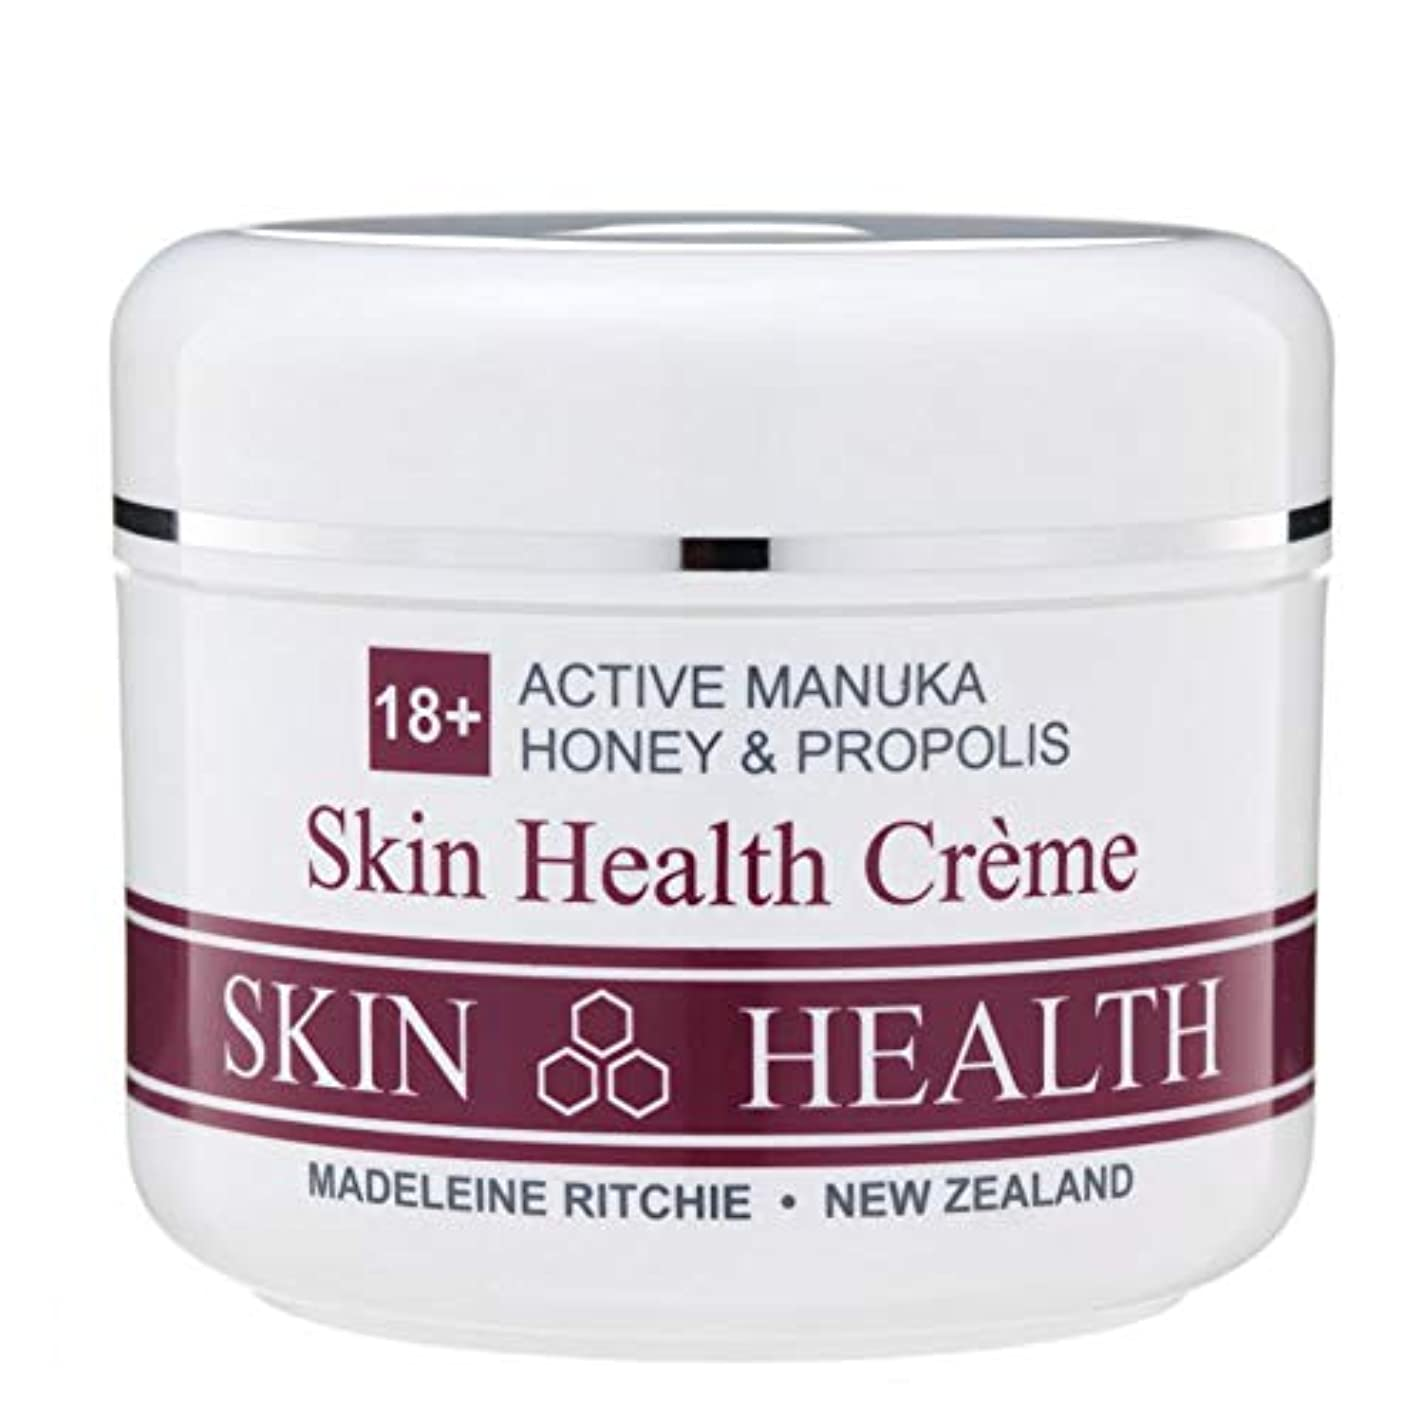 Madeleine Ritchie New Zealand Skin Health Creme 200ml